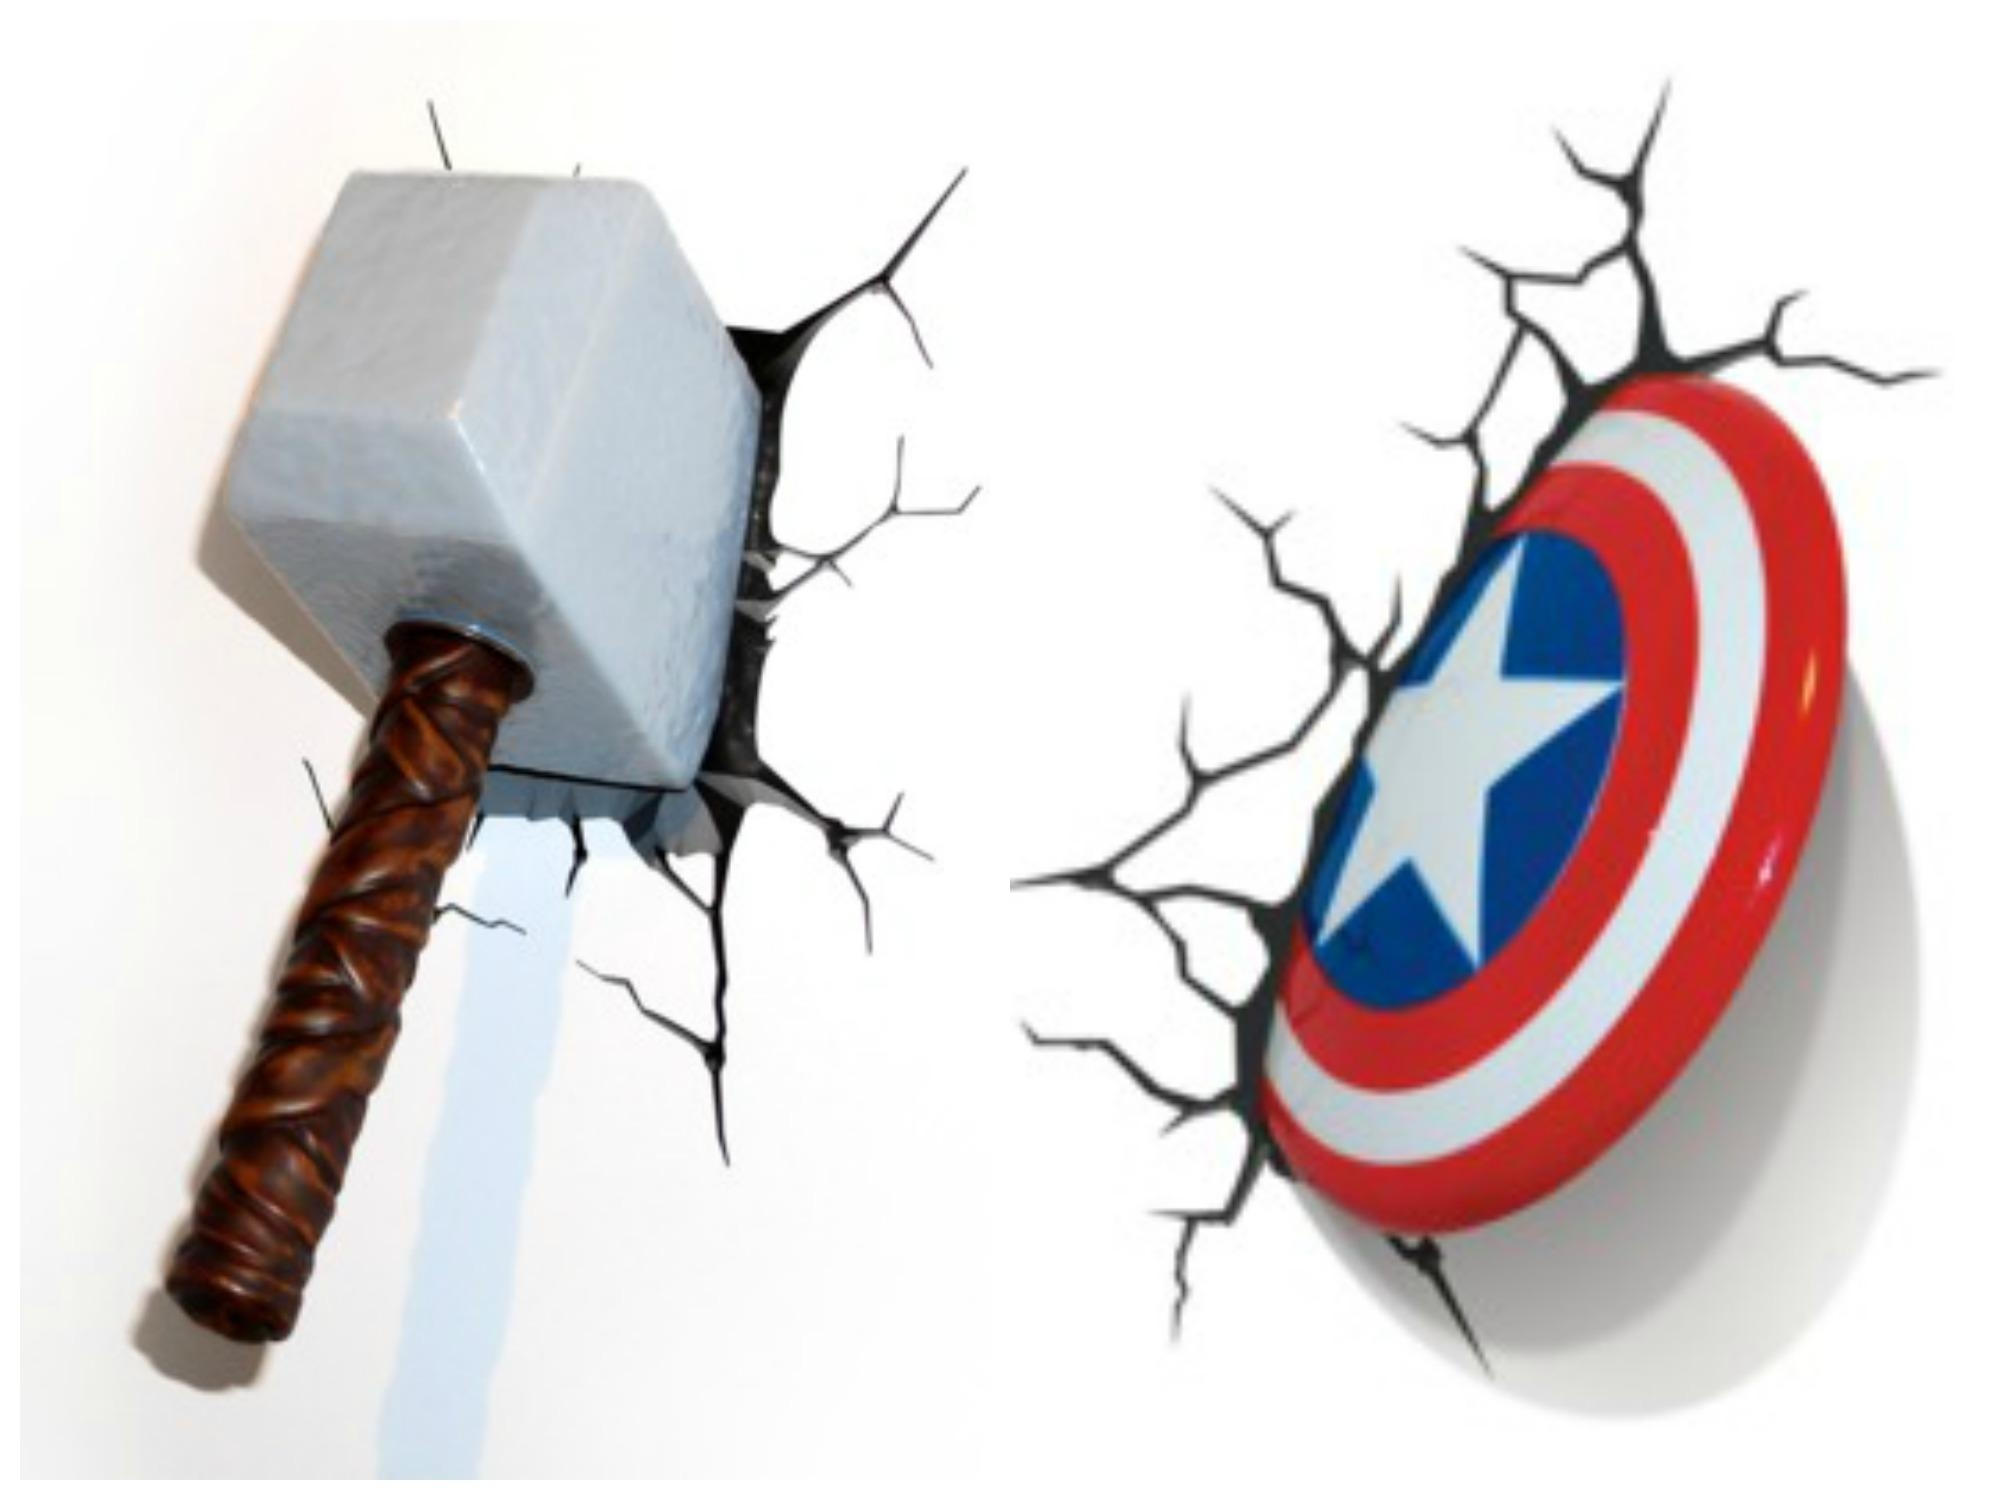 3d Wall Art Night Light 20 Inspirations The Avengers 3d Wall Art Nightlight Wall